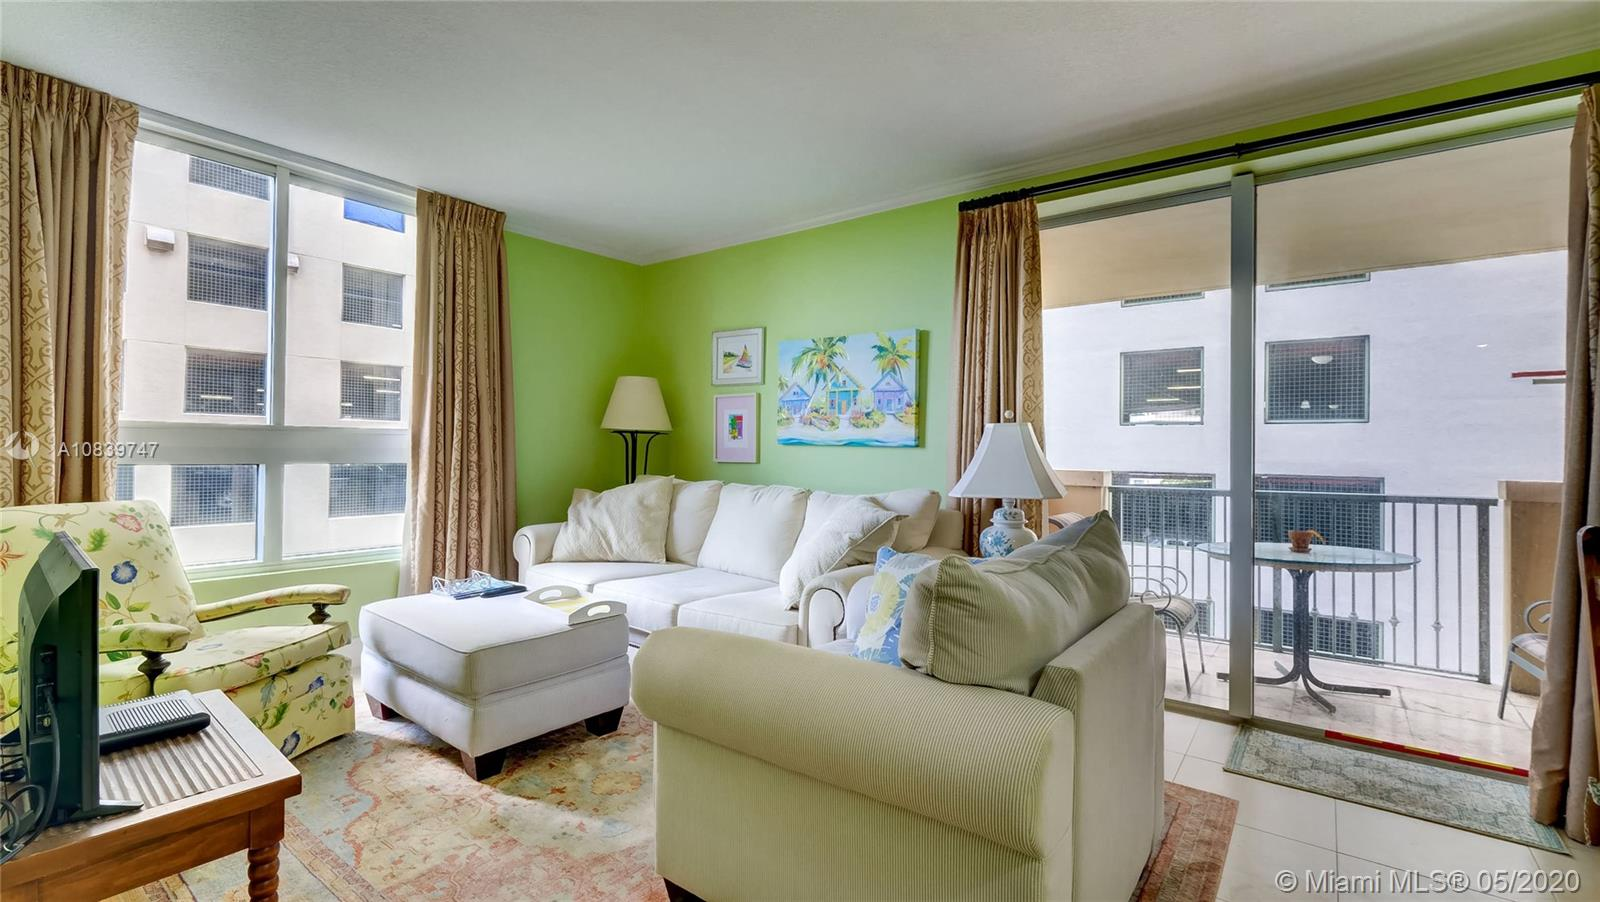 BEST DEAL IN THE MUTINY.  This 1 bed/1 bath unit is one of the largest one bedrooms in the building with 810 square feet and even has views of Peacock Park and Biscayne Bay from the living room and bedroom.  Unit can be used as a primary residence, rented to a long-term tenant, or rented short term via Airbnb or The Mutiny's hotel program.  There are no occupancy/rental restrictions.  Call to find out more about this unit and the rental opportunities.  In-person and virtual showings available!   Please visit the following link for a 360° Virtual Tour of this property